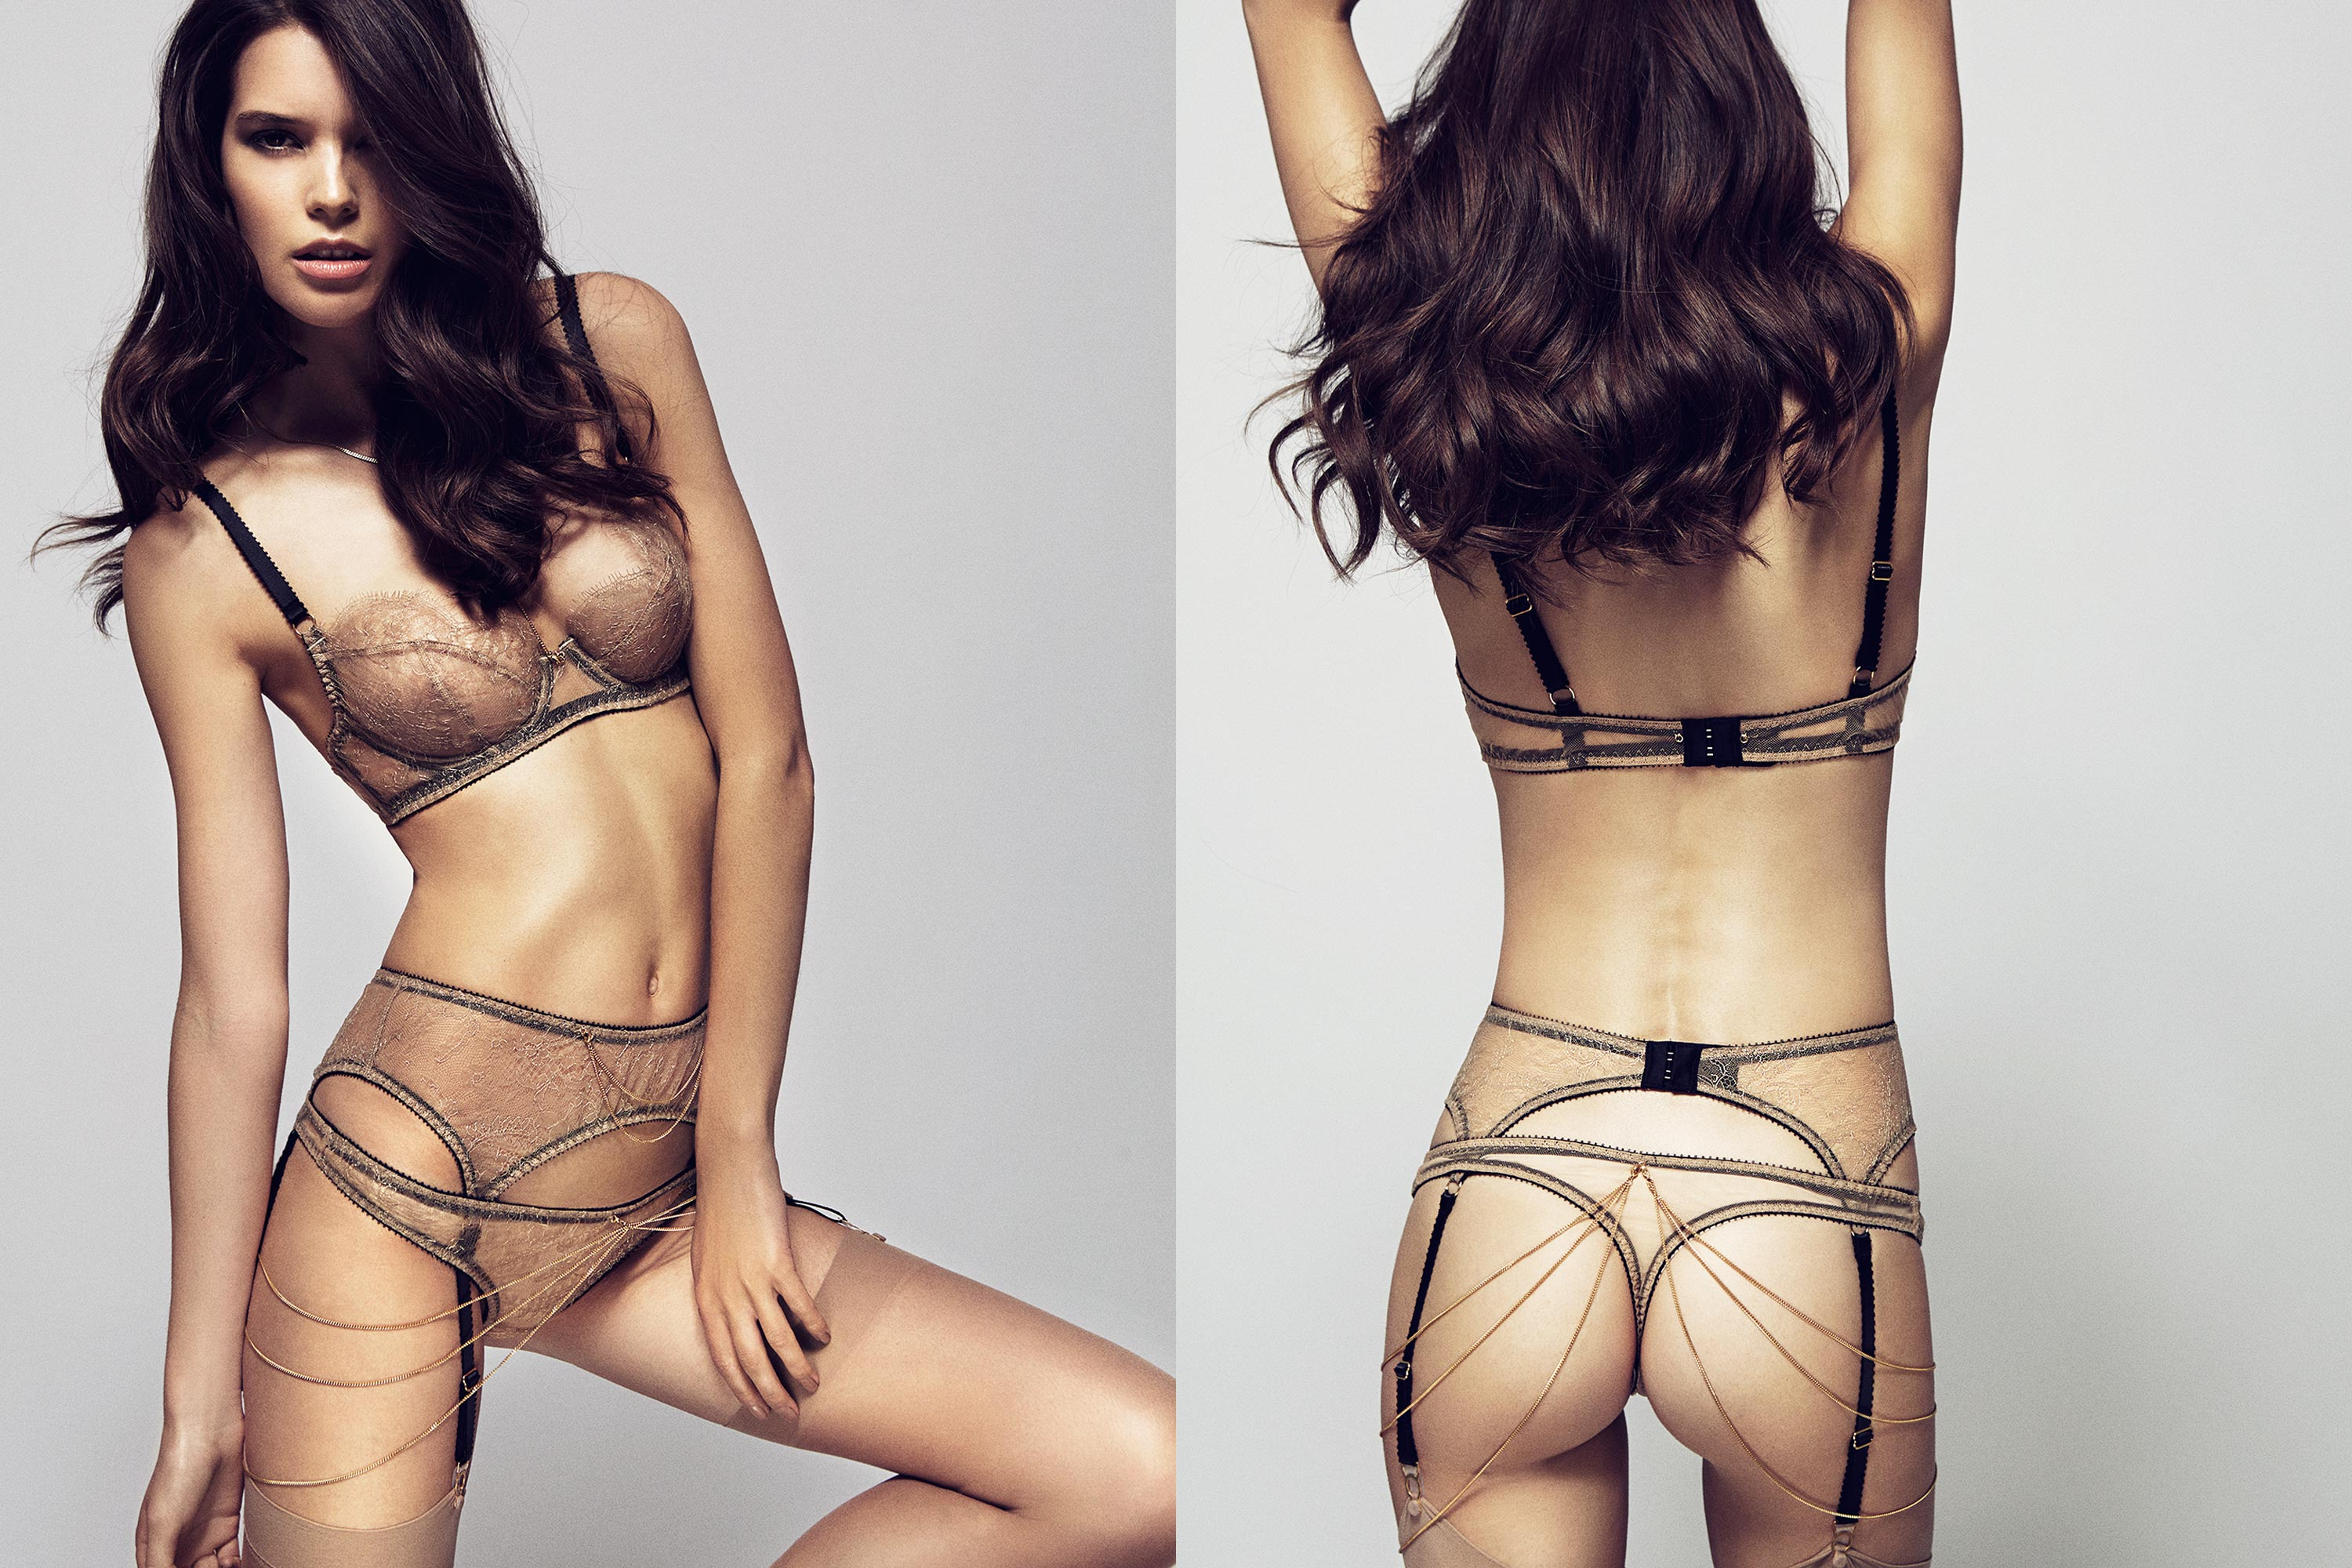 Naomi Bra, Suspender & Thong by Edge o' Beyond